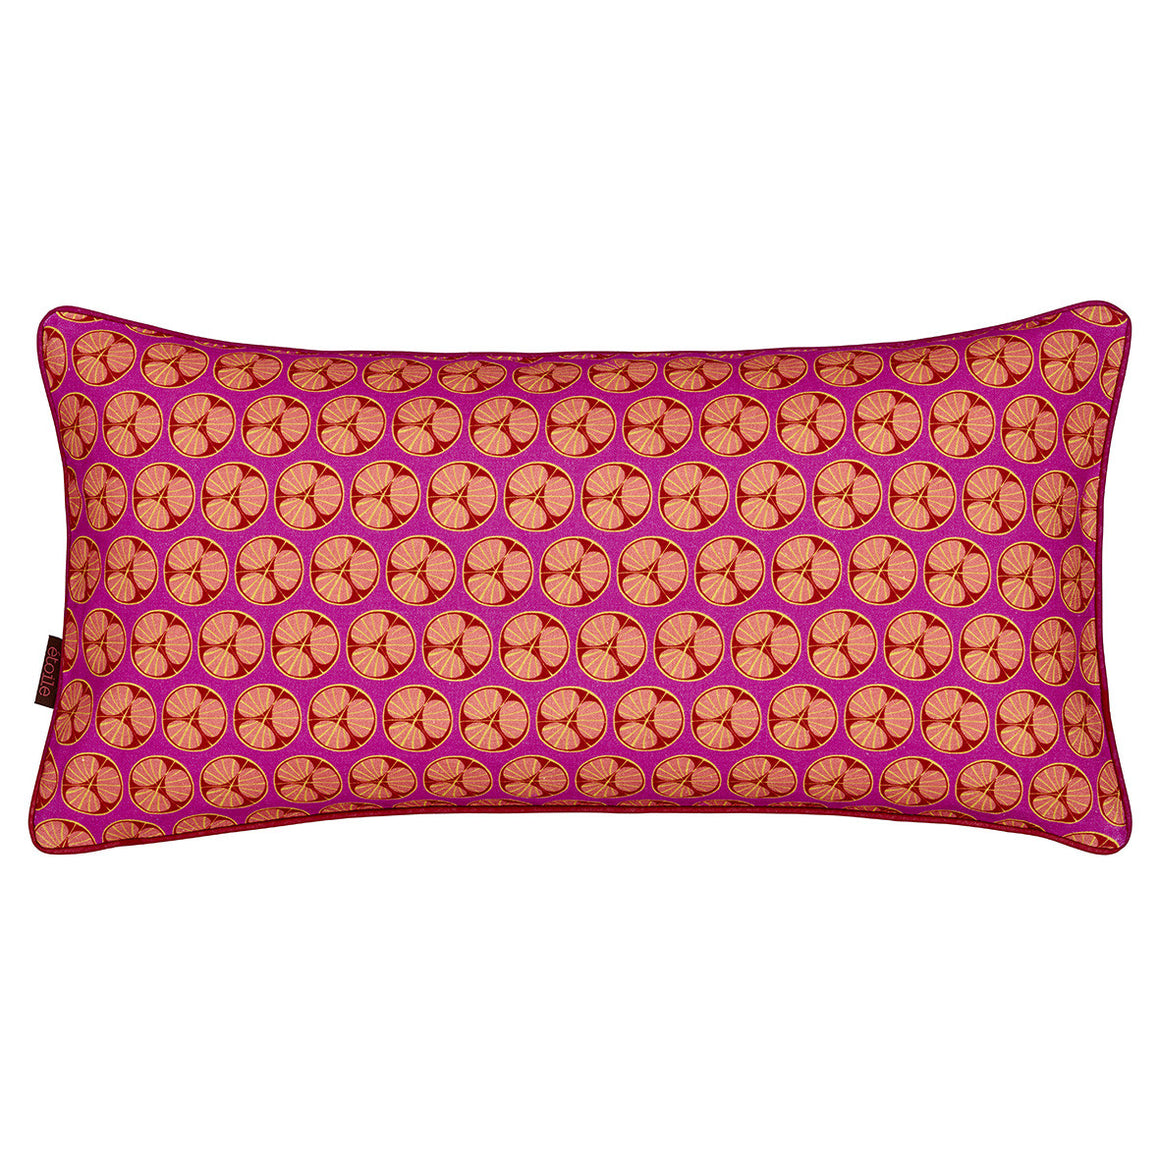 "Graphic Fruit Cross Section Pattern Linen Union Printed Decorative Throw Pillow in Fuchsia Pink 12x24"" 30x60cm"